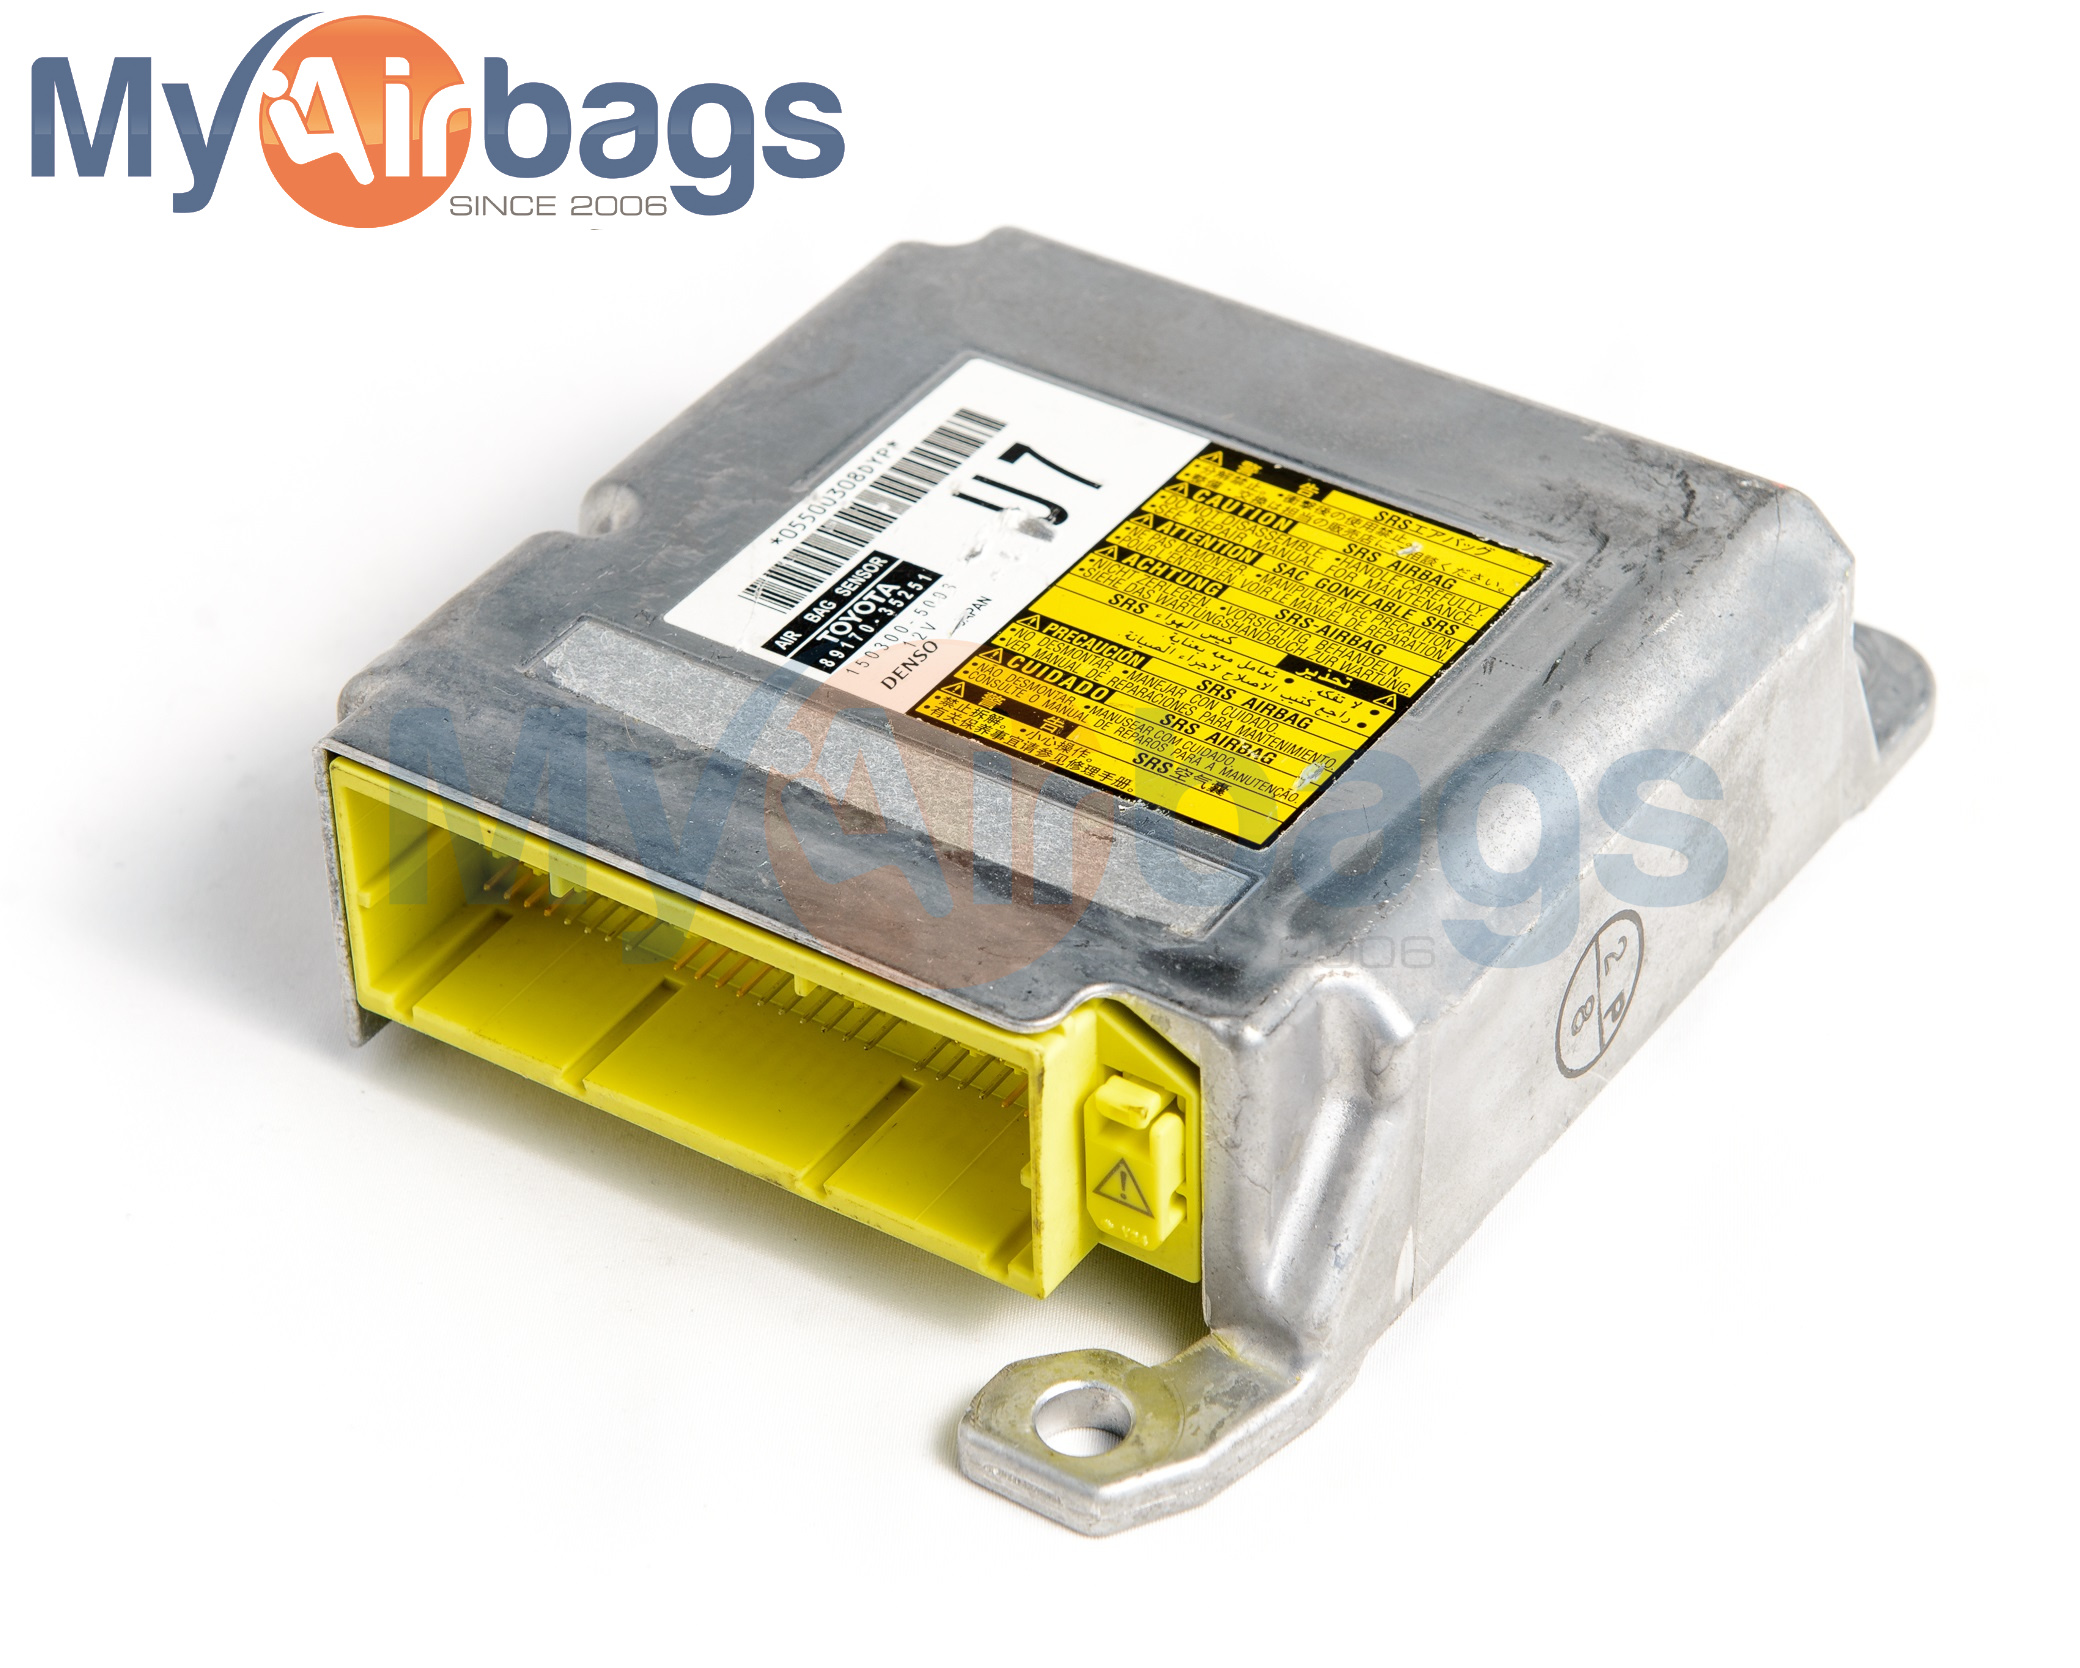 Details about FITS FORD F150 SRS AIRBAG COMPUTER MODULE RESET SERVICE RCM  RESTRAINT CONTROL